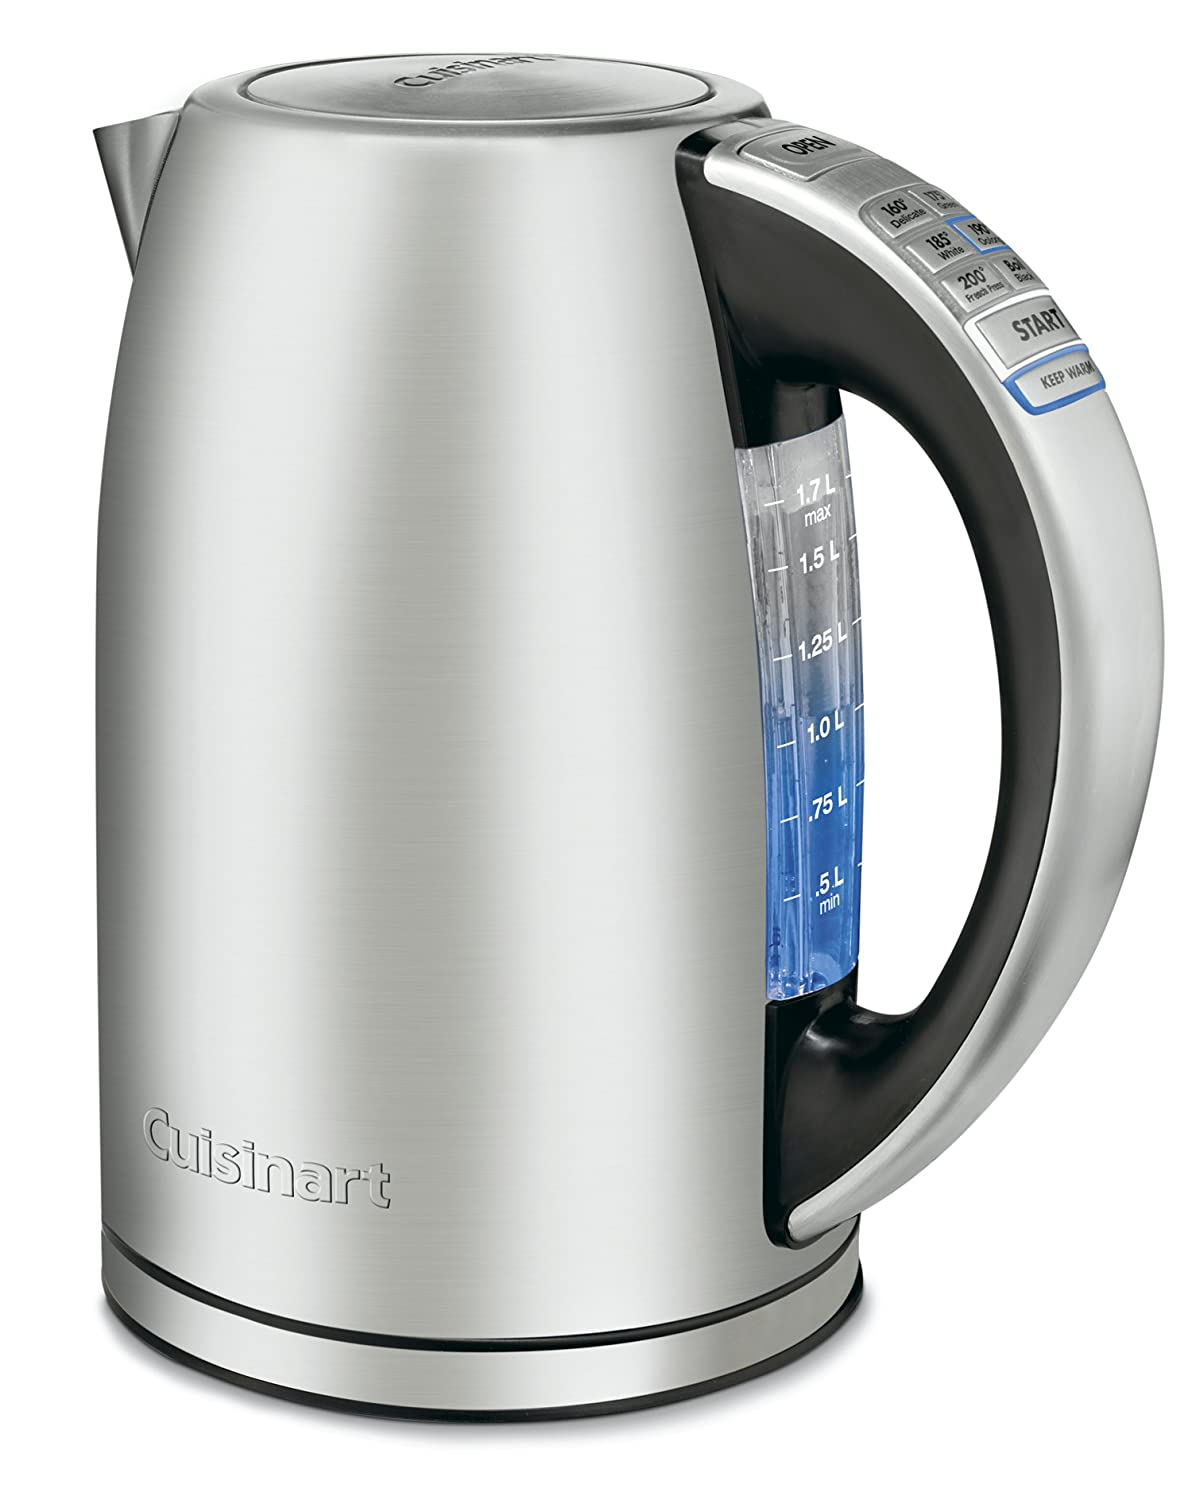 Cuisinart CPK-17 1.7-Liter Electric Kettle